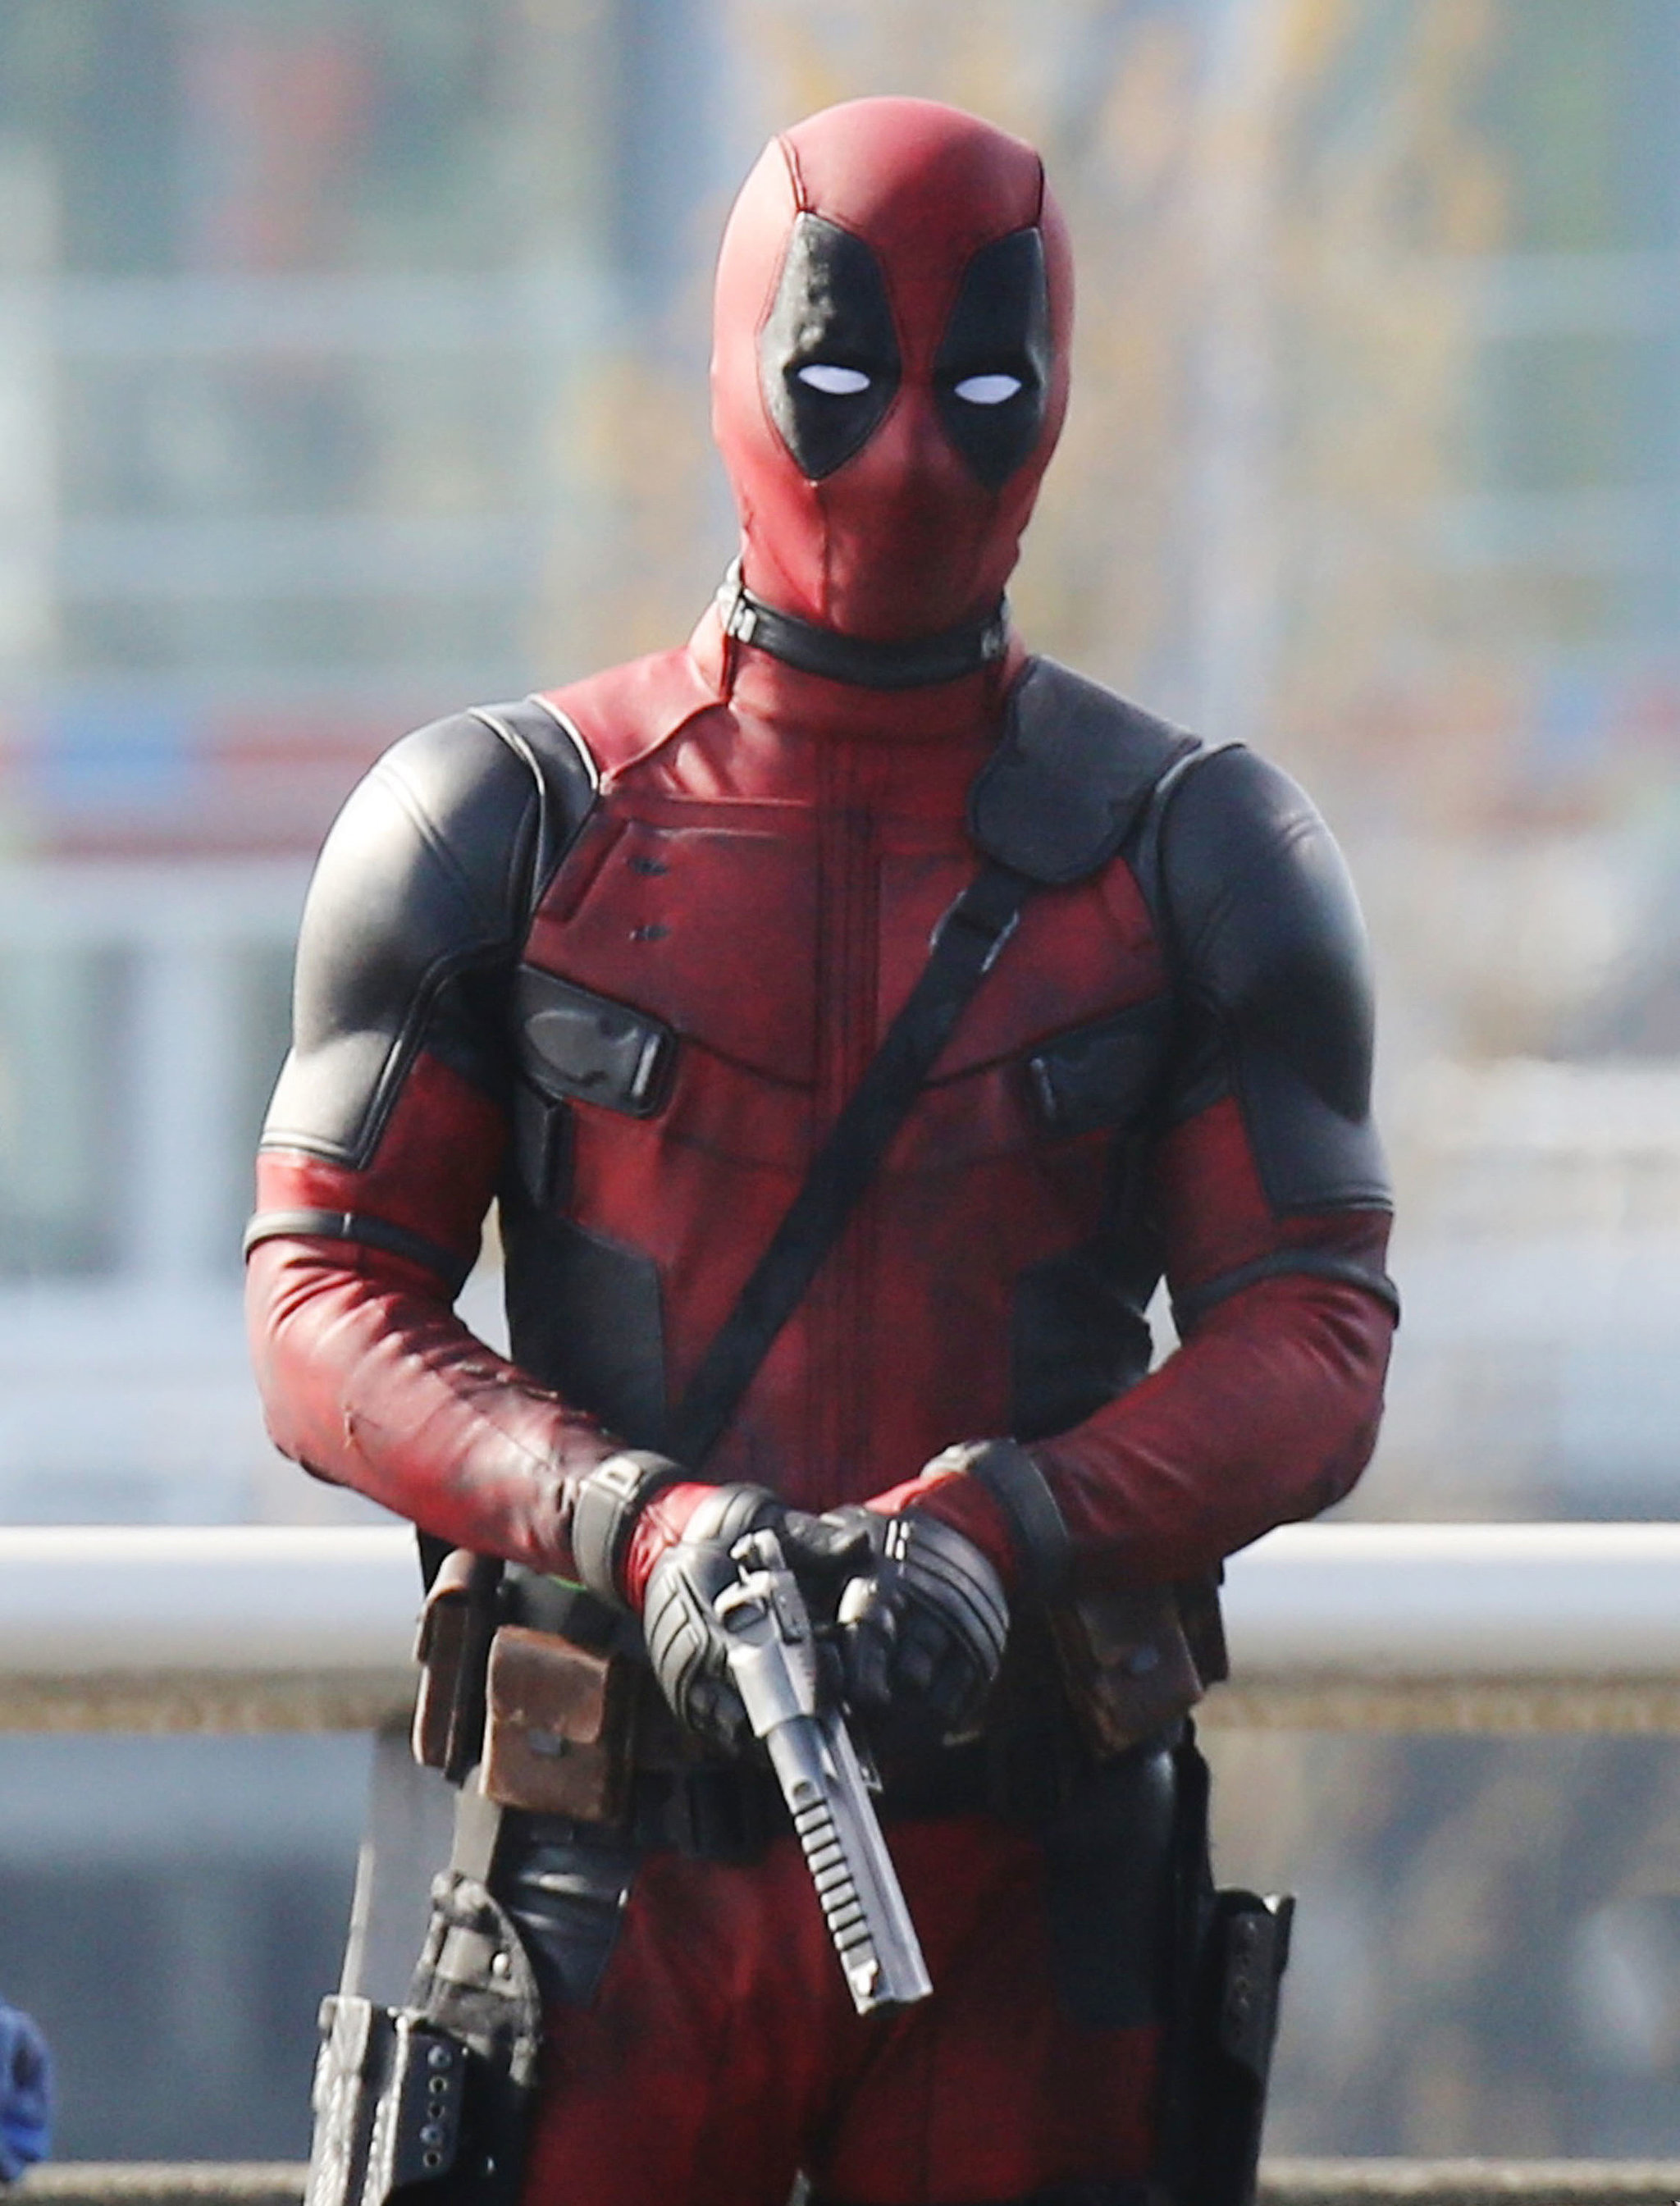 Free Download Deadpool Movie High Quality Wallpapers For Iphone 2048x2689 For Your Desktop Mobile Tablet Explore 70 Deadpool Movie Wallpaper Deadpool Wallpaper Hd Deadpool Wallpaper 2016 Deadpool Movie Wallpaper 1080p